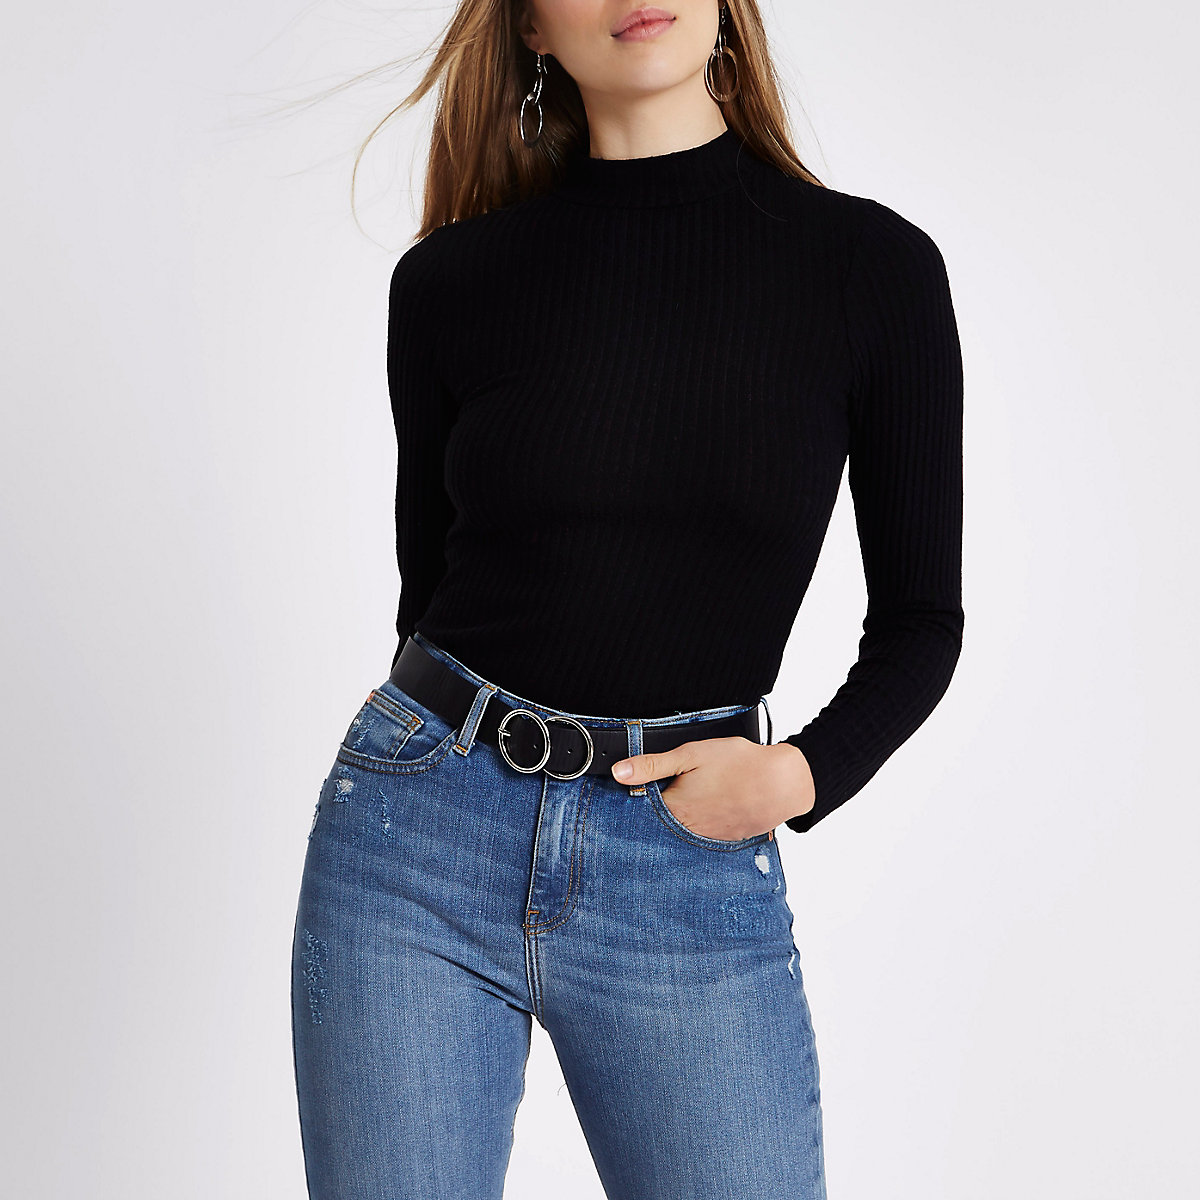 Black ribbed high neck fitted top - T-Shirts - Tops - women 46bba4978b